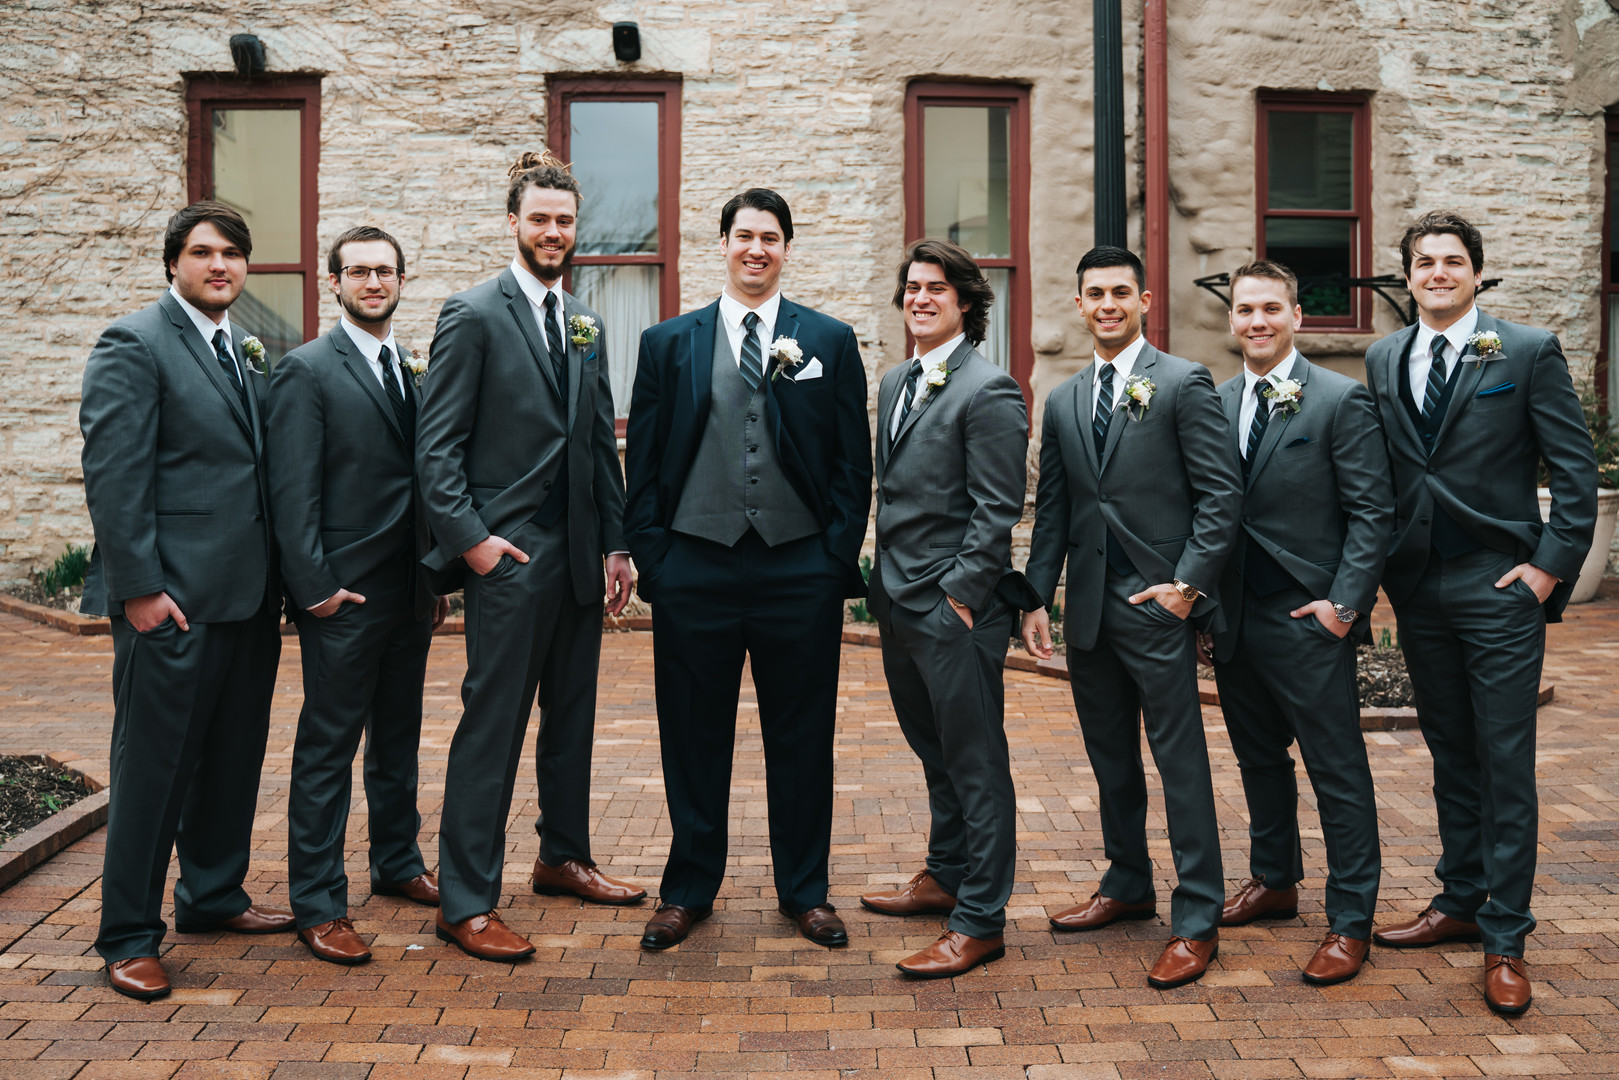 Grooms and groomsmen attire: Beautiful Illinois wedding at Riverside Receptions captured by Windy City Production. See more wedding ideas at CHItheeWED.com!